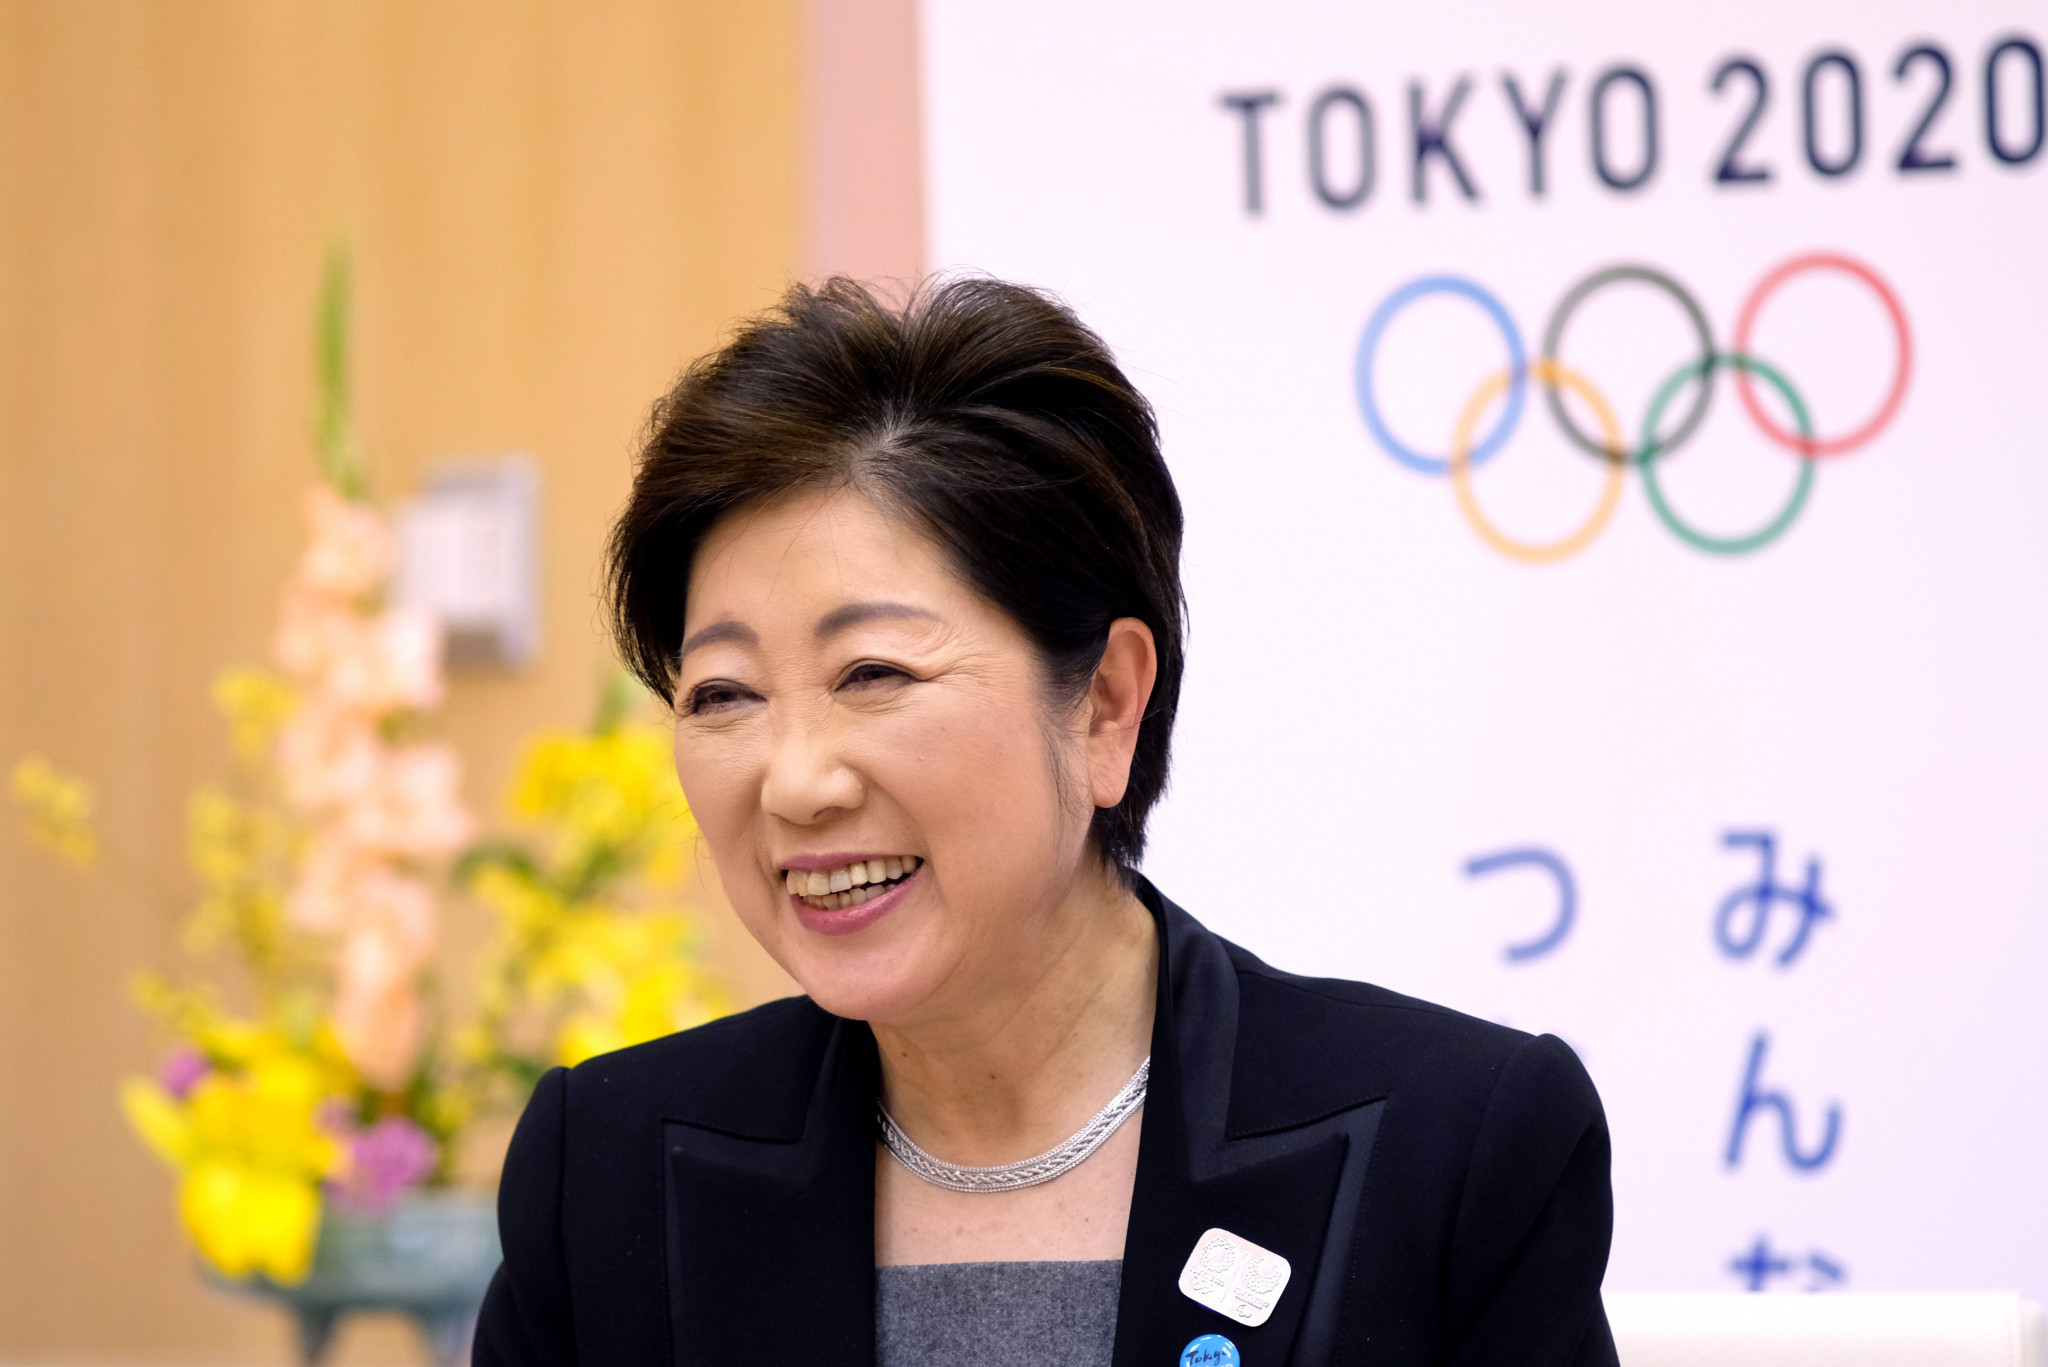 Yuriko Koike was also given the petition ©Getty Images